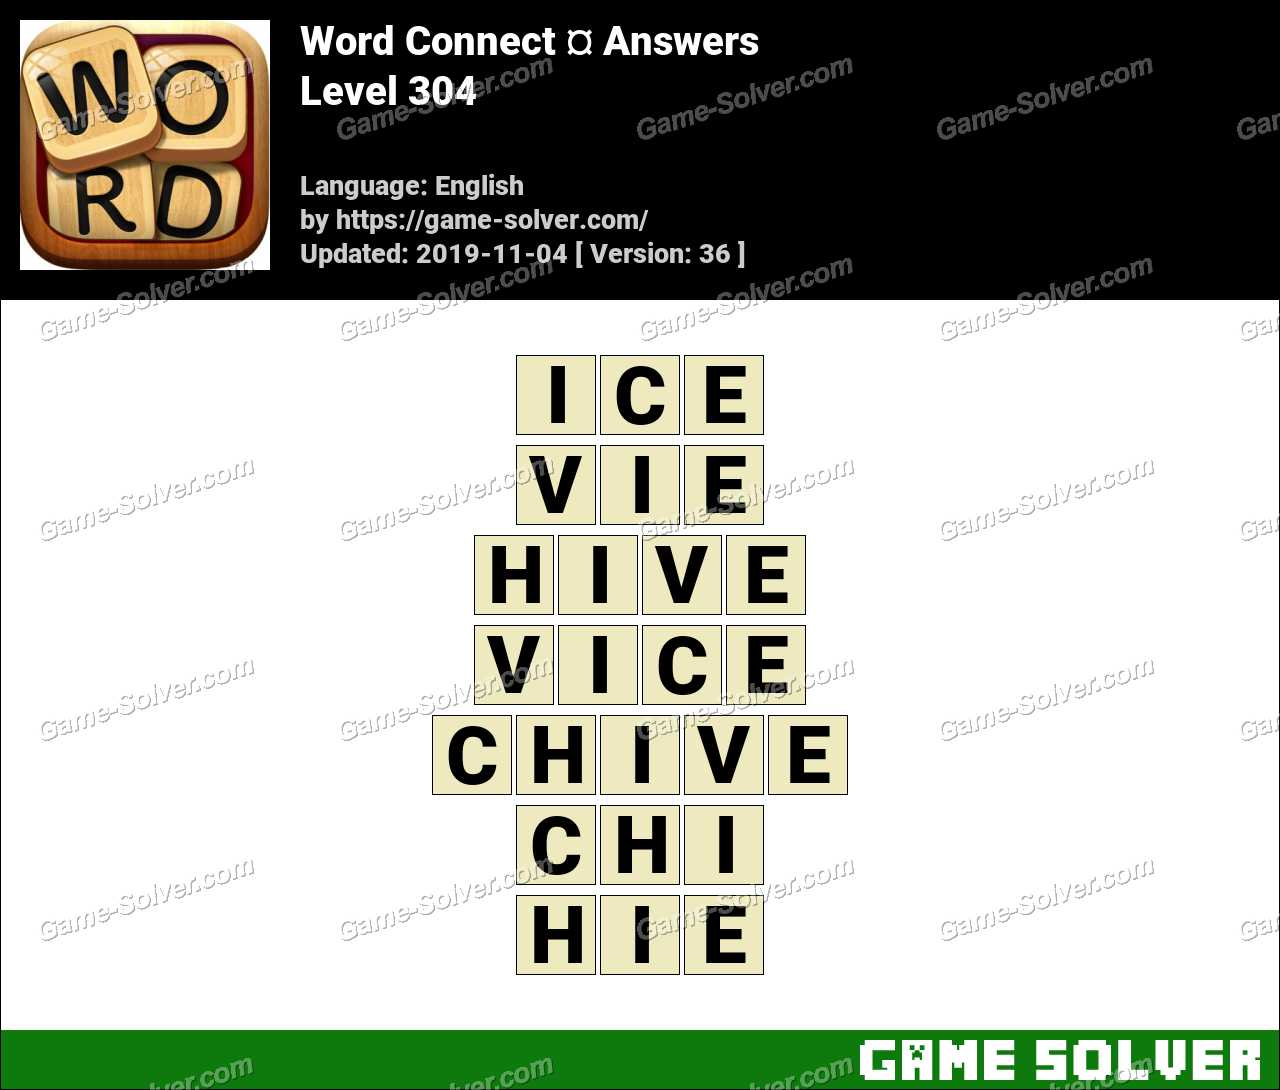 Word Connect Level 304 Answers